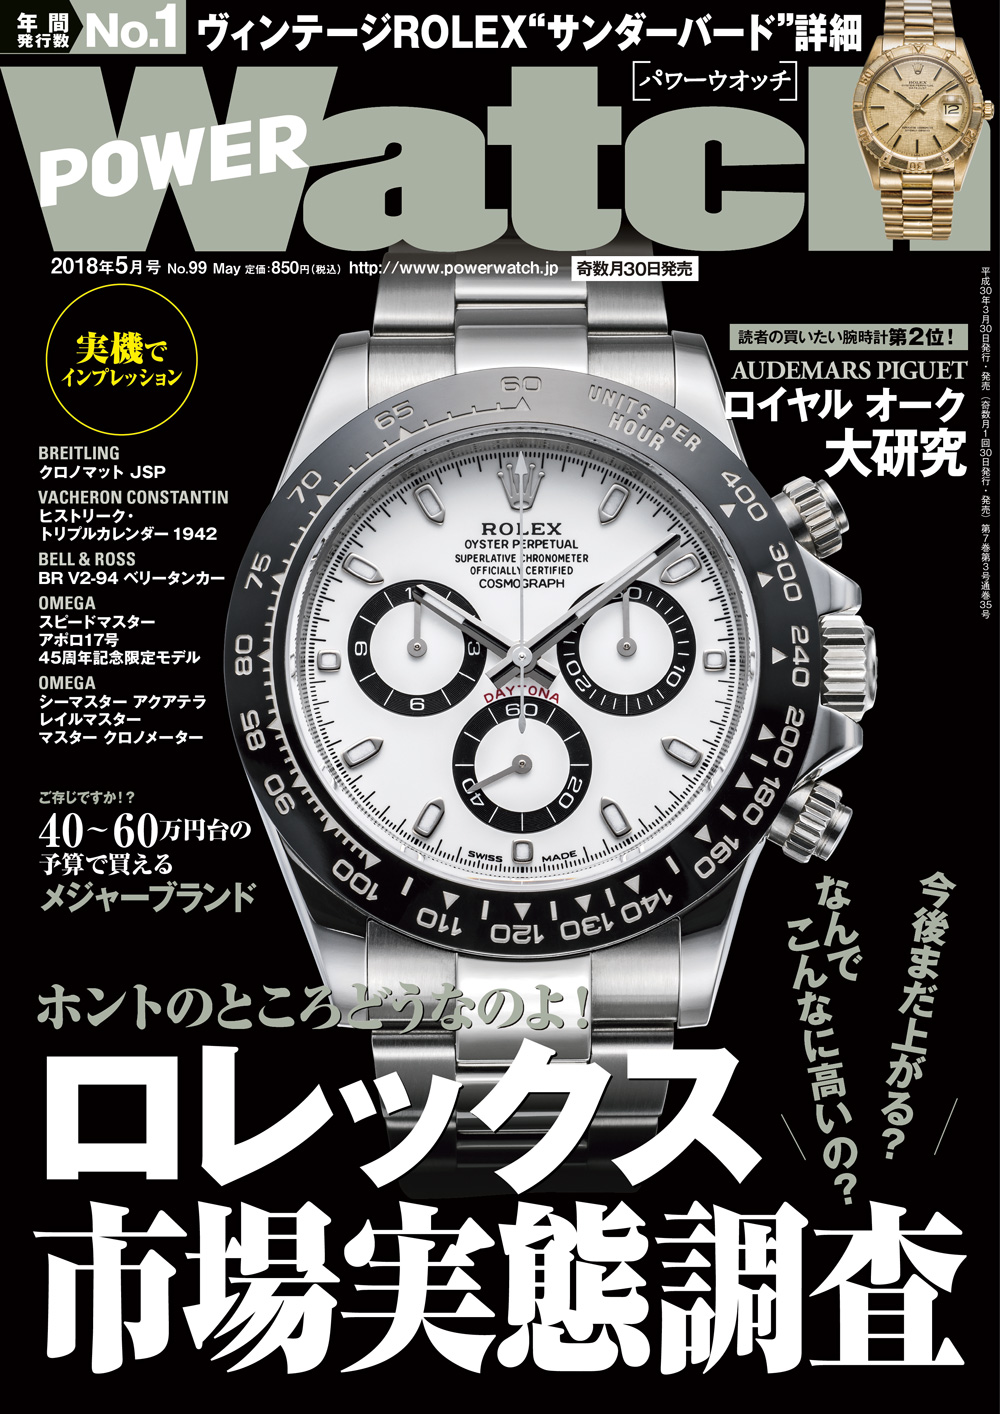 C's-Factory|電子書籍|POWER Watch No.99